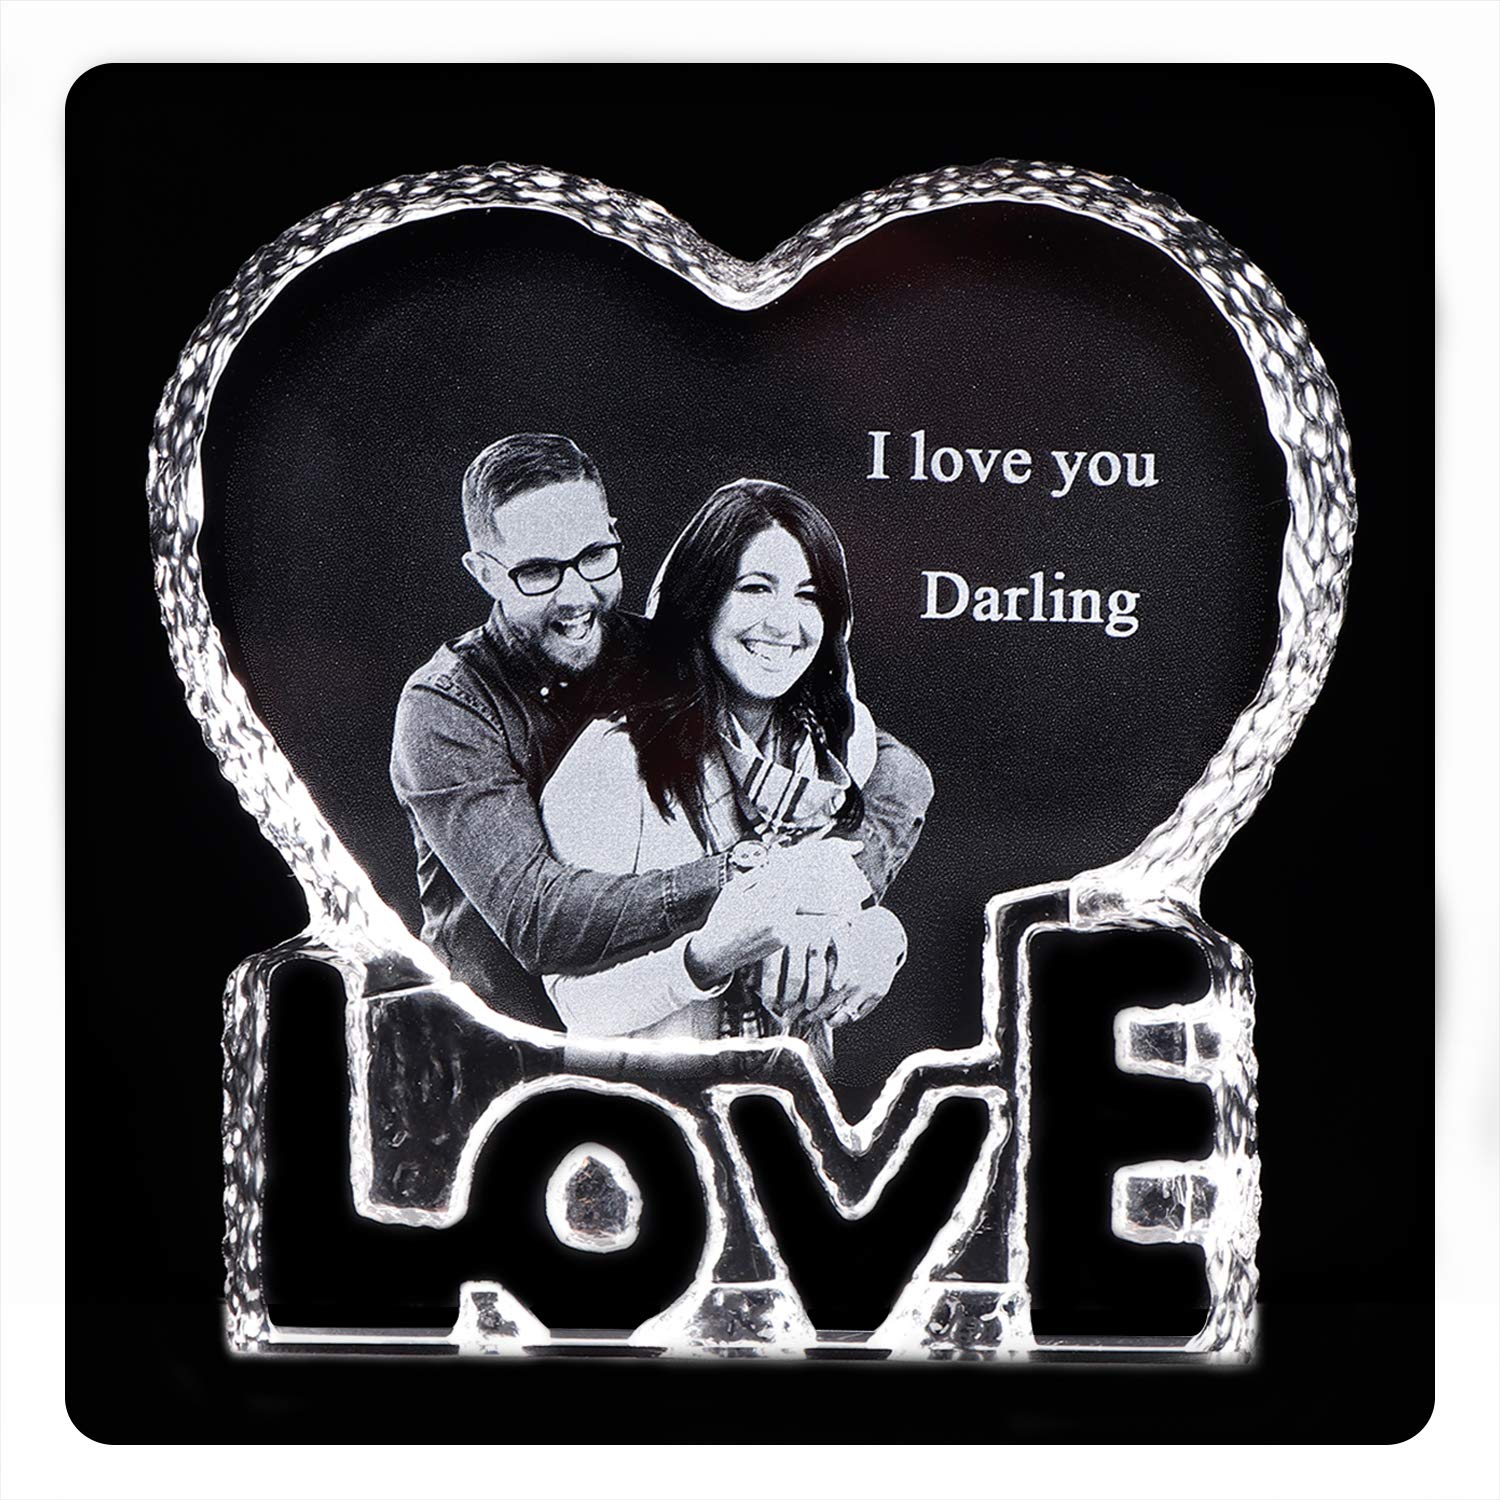 Amazon.com - YWHL Personalized Custom Photo Gifts Crystal Wedding Anniversary Sculpture for Him Husband Boyfriend Her Wife Girlfriend -